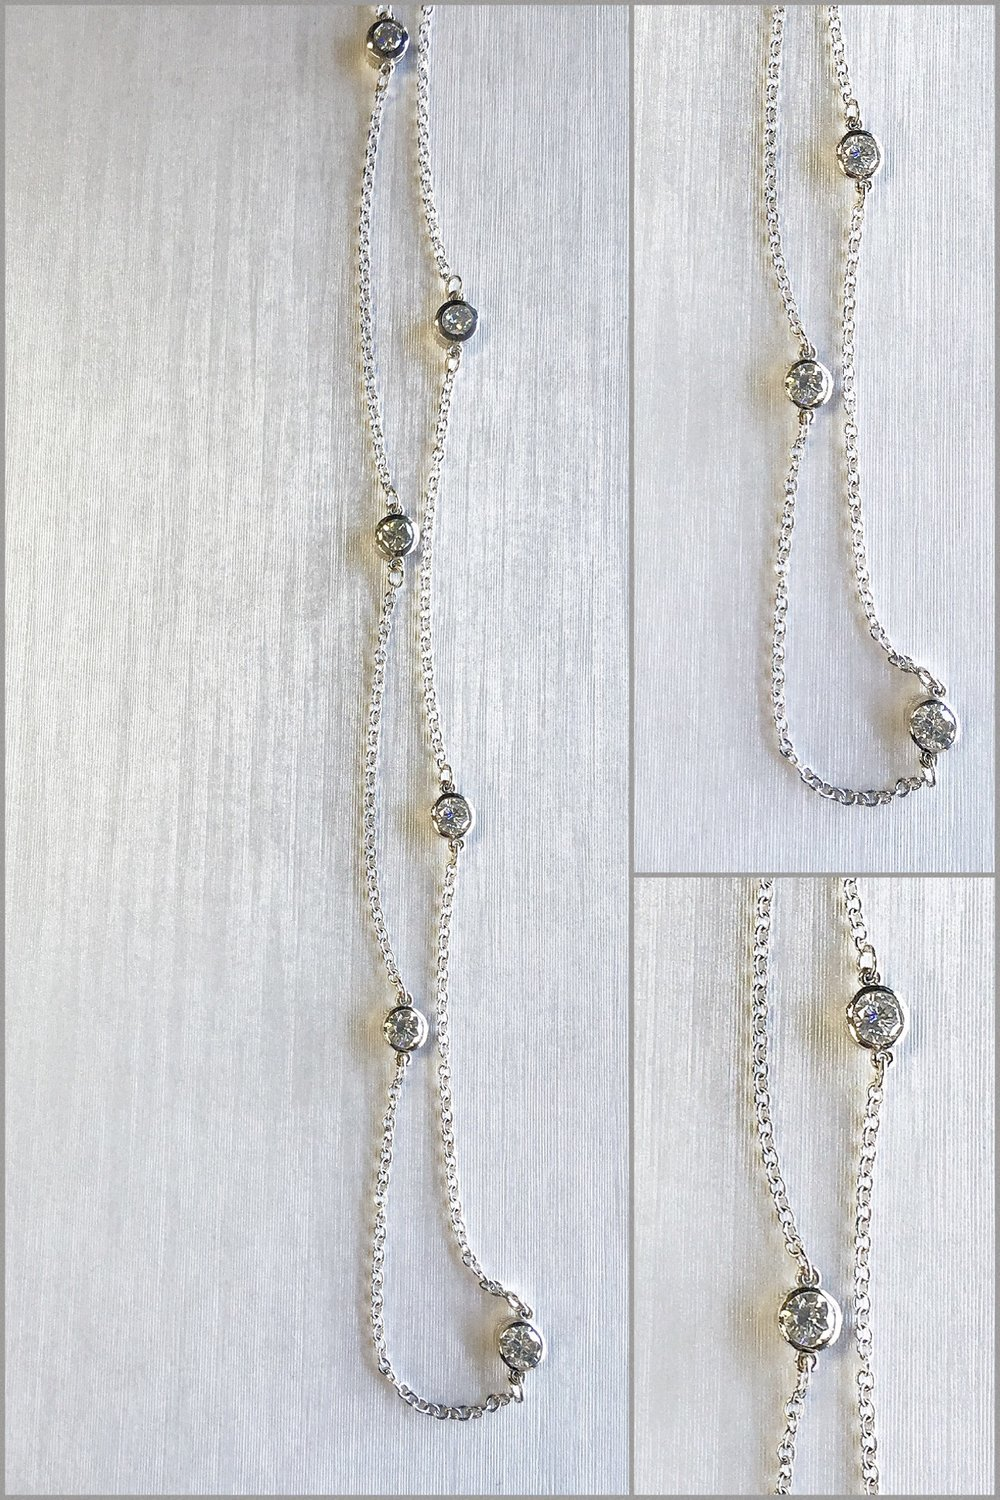 14K White Gold Diamonds By The Yard Necklace.